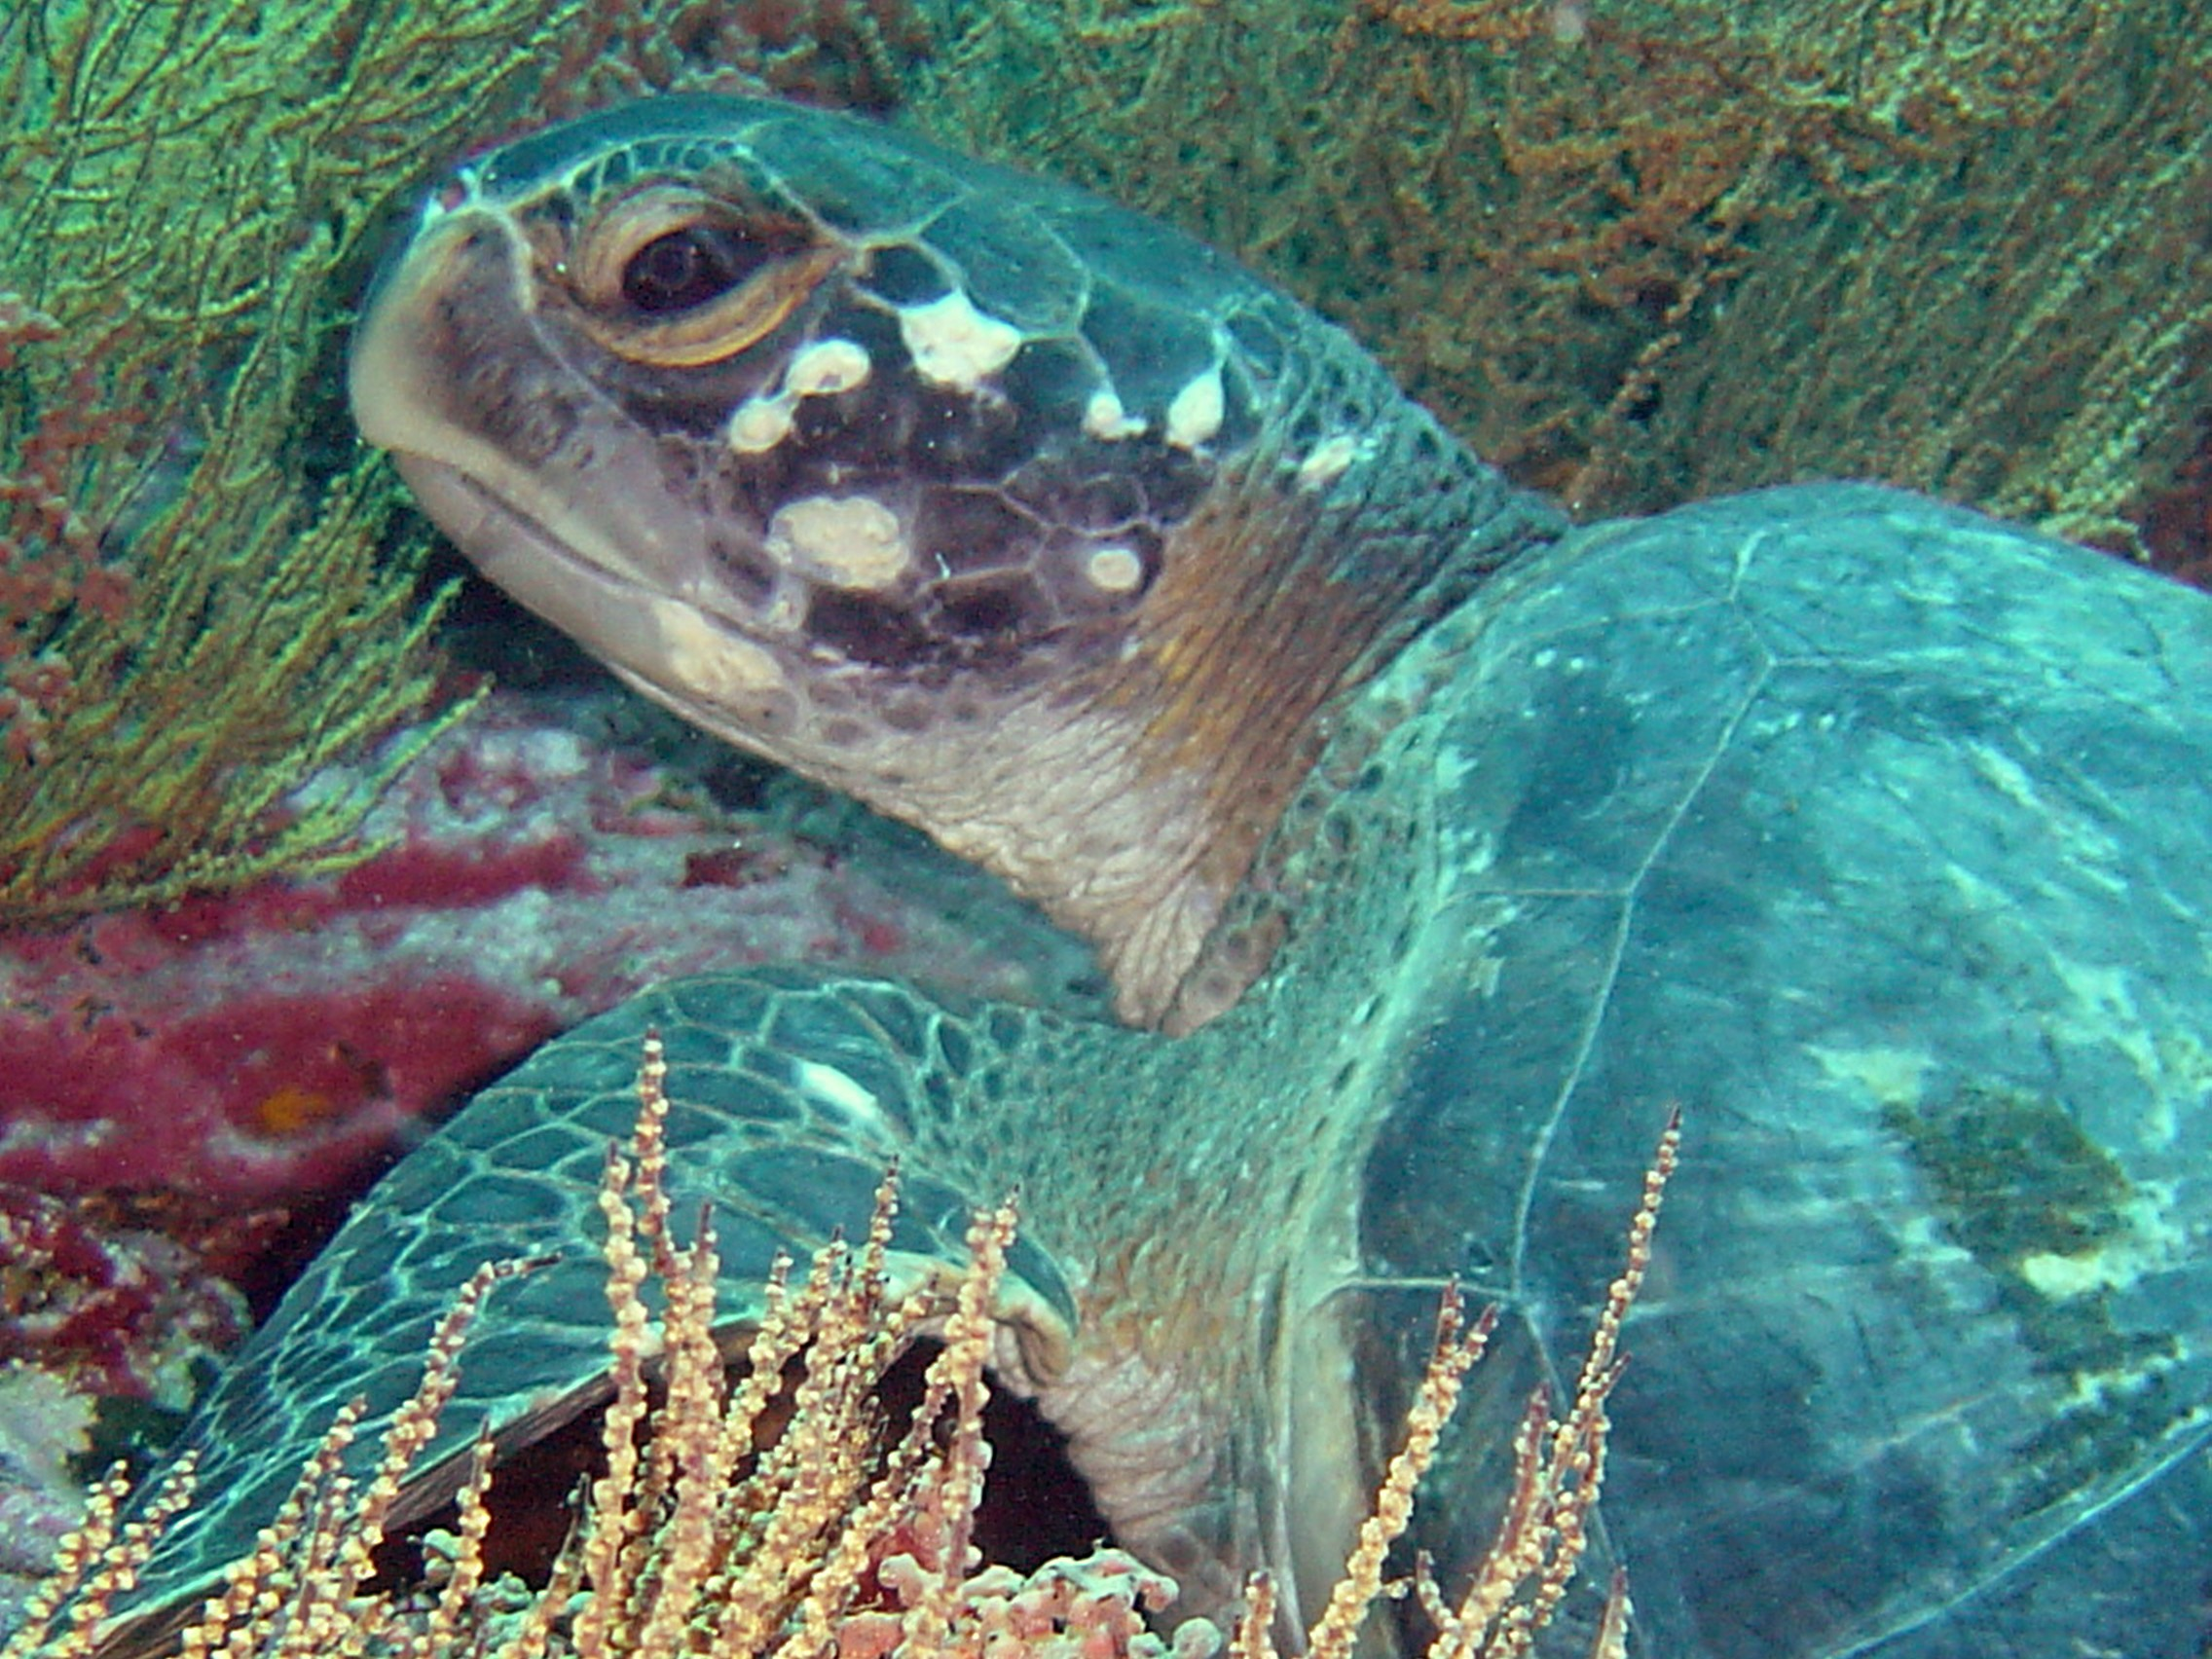 Snorkeling with sea turtles in the Galapagos Islands